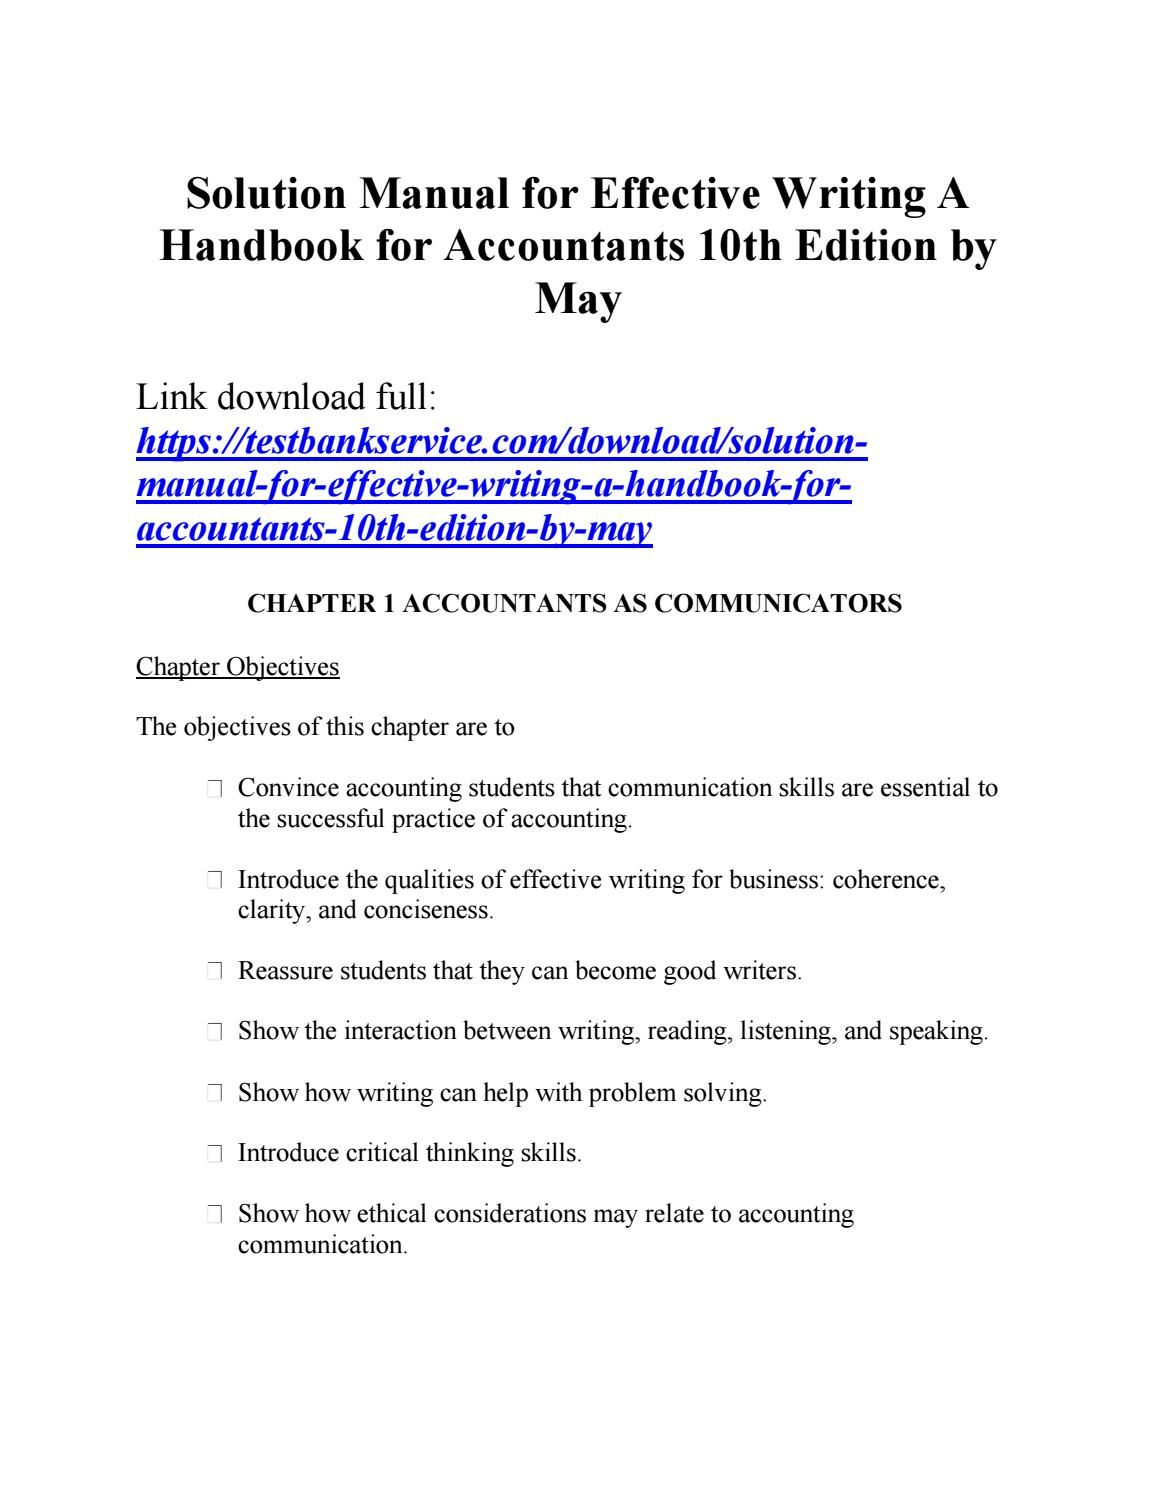 Solution Manual for Effective Writing a Handbook for Accountants 10th  Edition by May | Solutions Manual | Pinterest | Newspaper and Digital